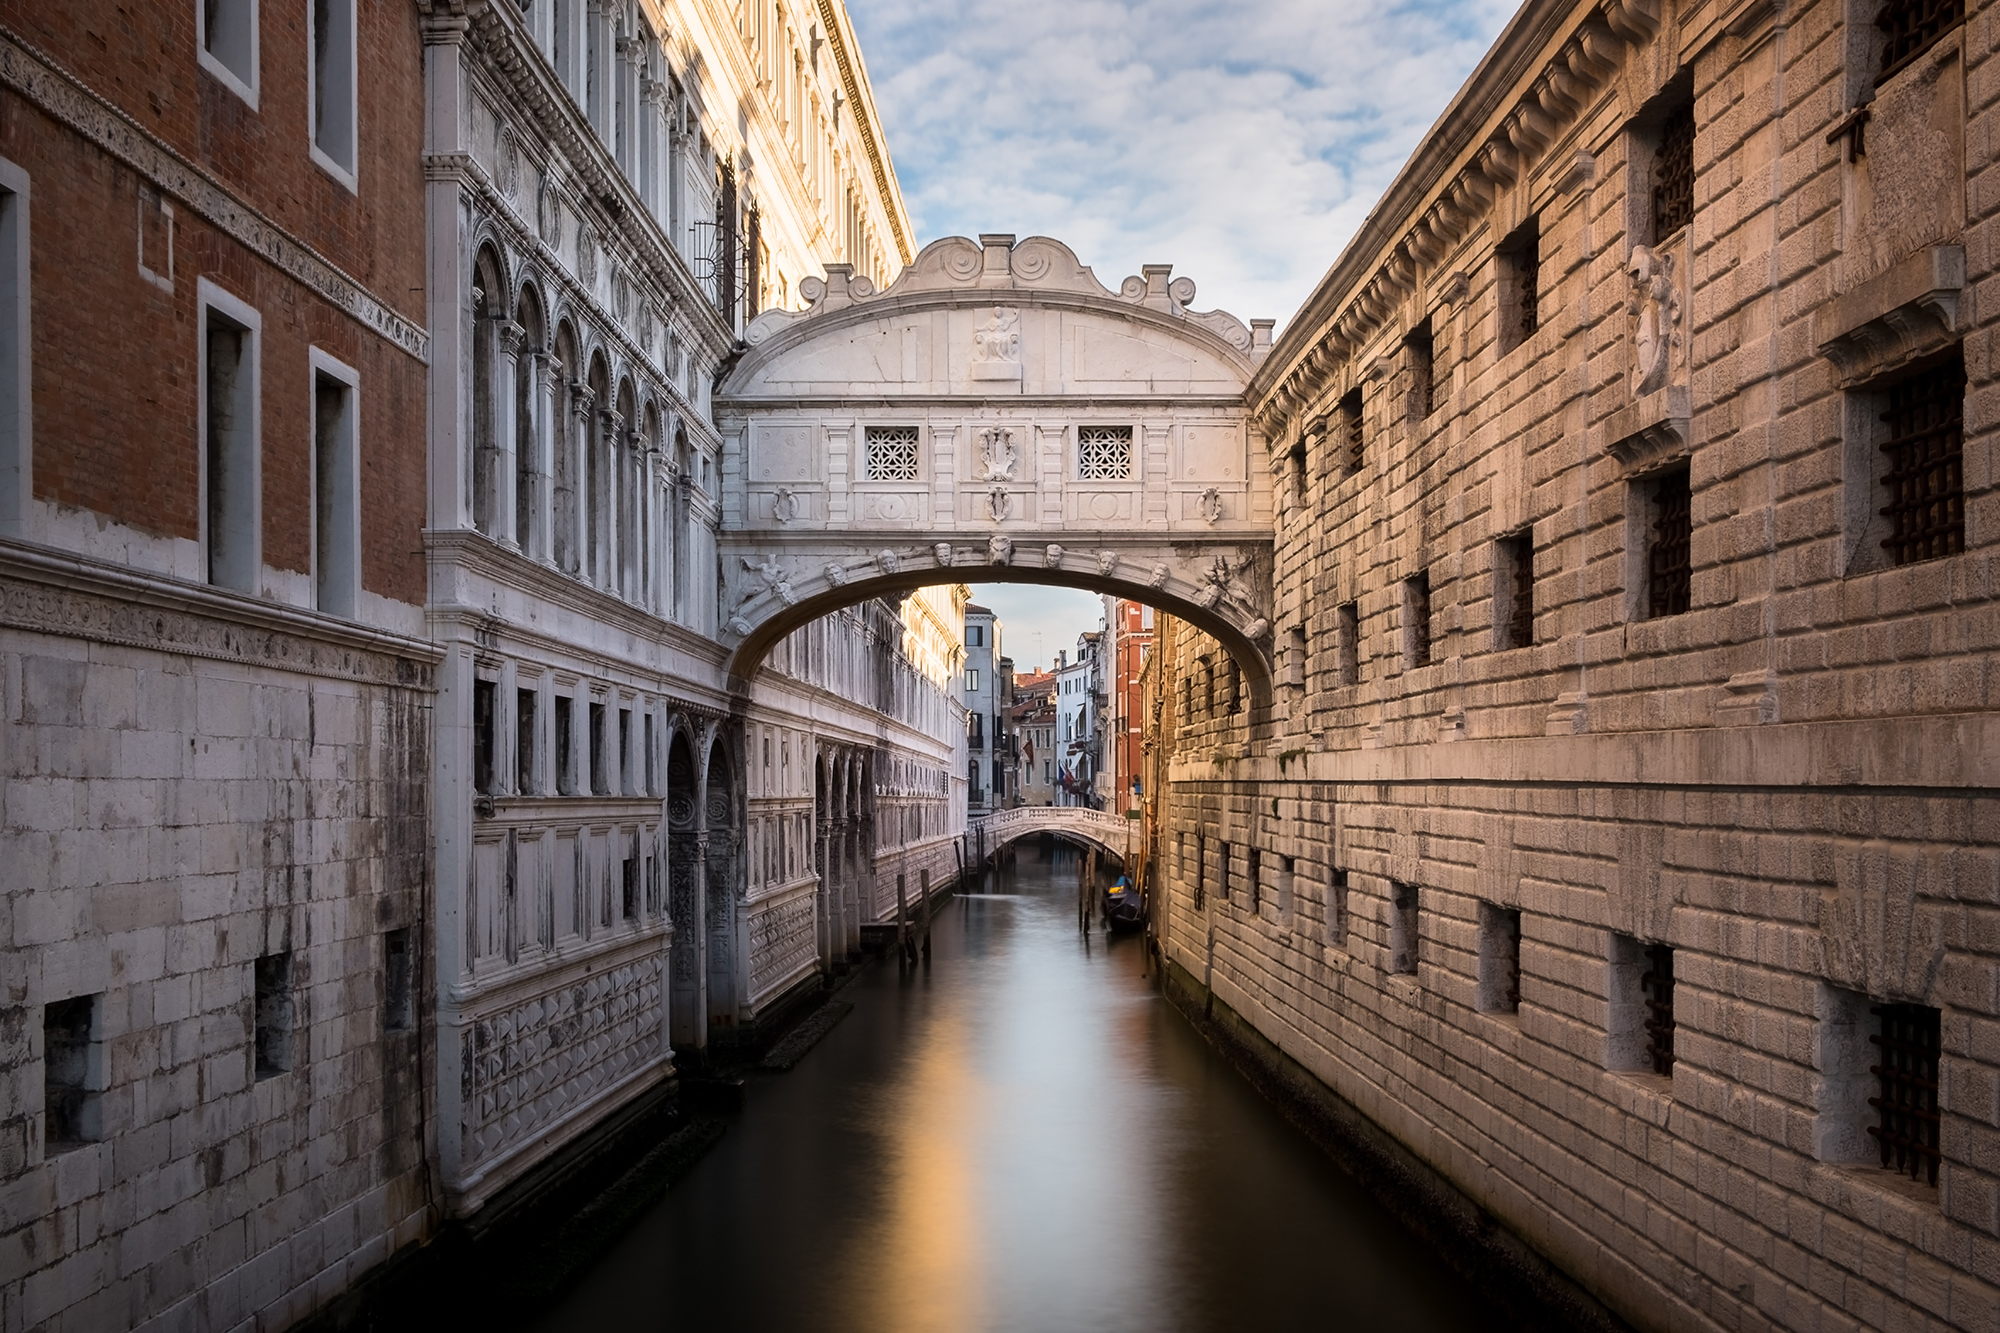 A photo of the Bridge of Sighs taken in the morning by Trevor Sherwin